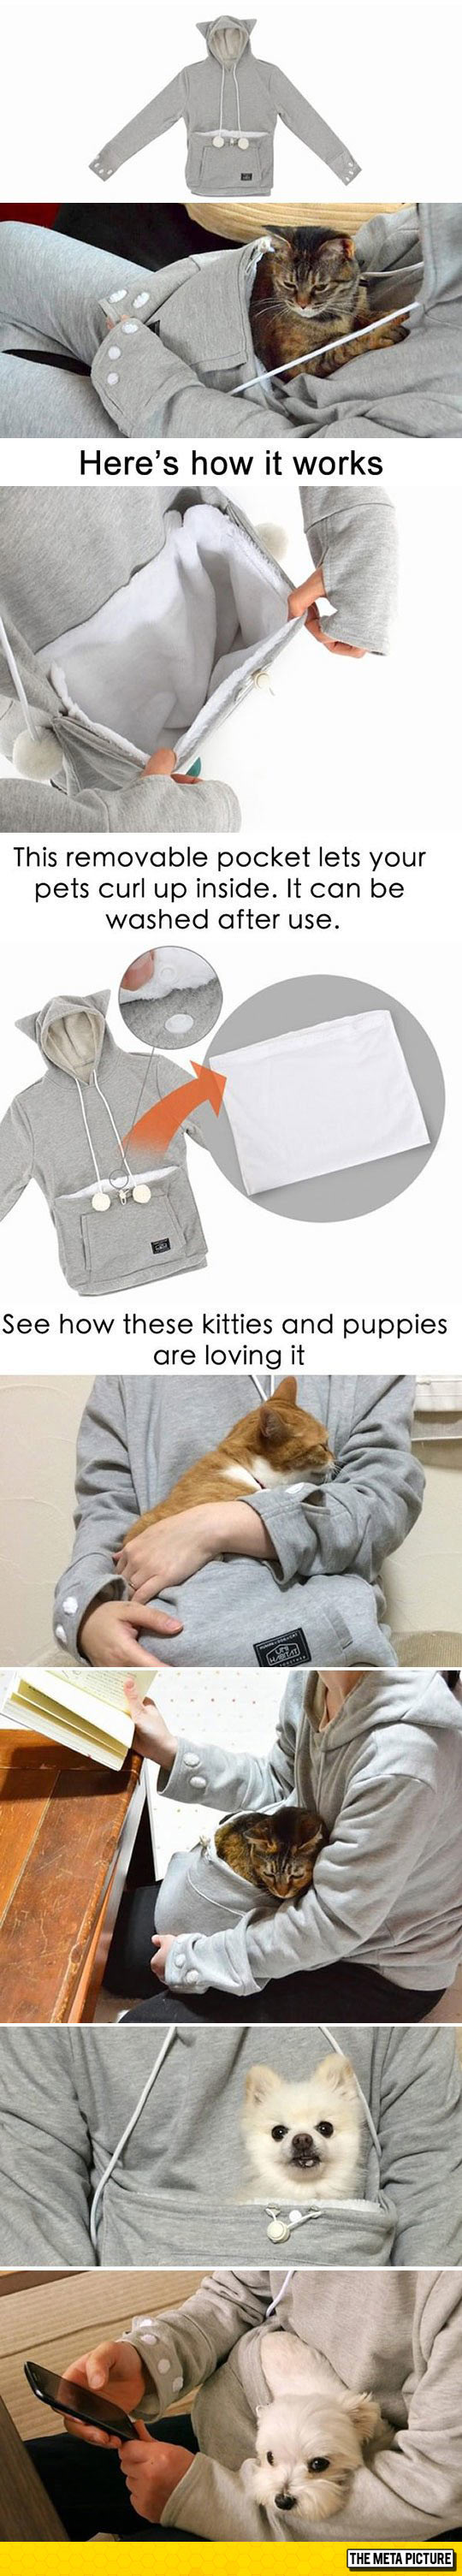 cool-hoodie-for-pets-cats-dogs